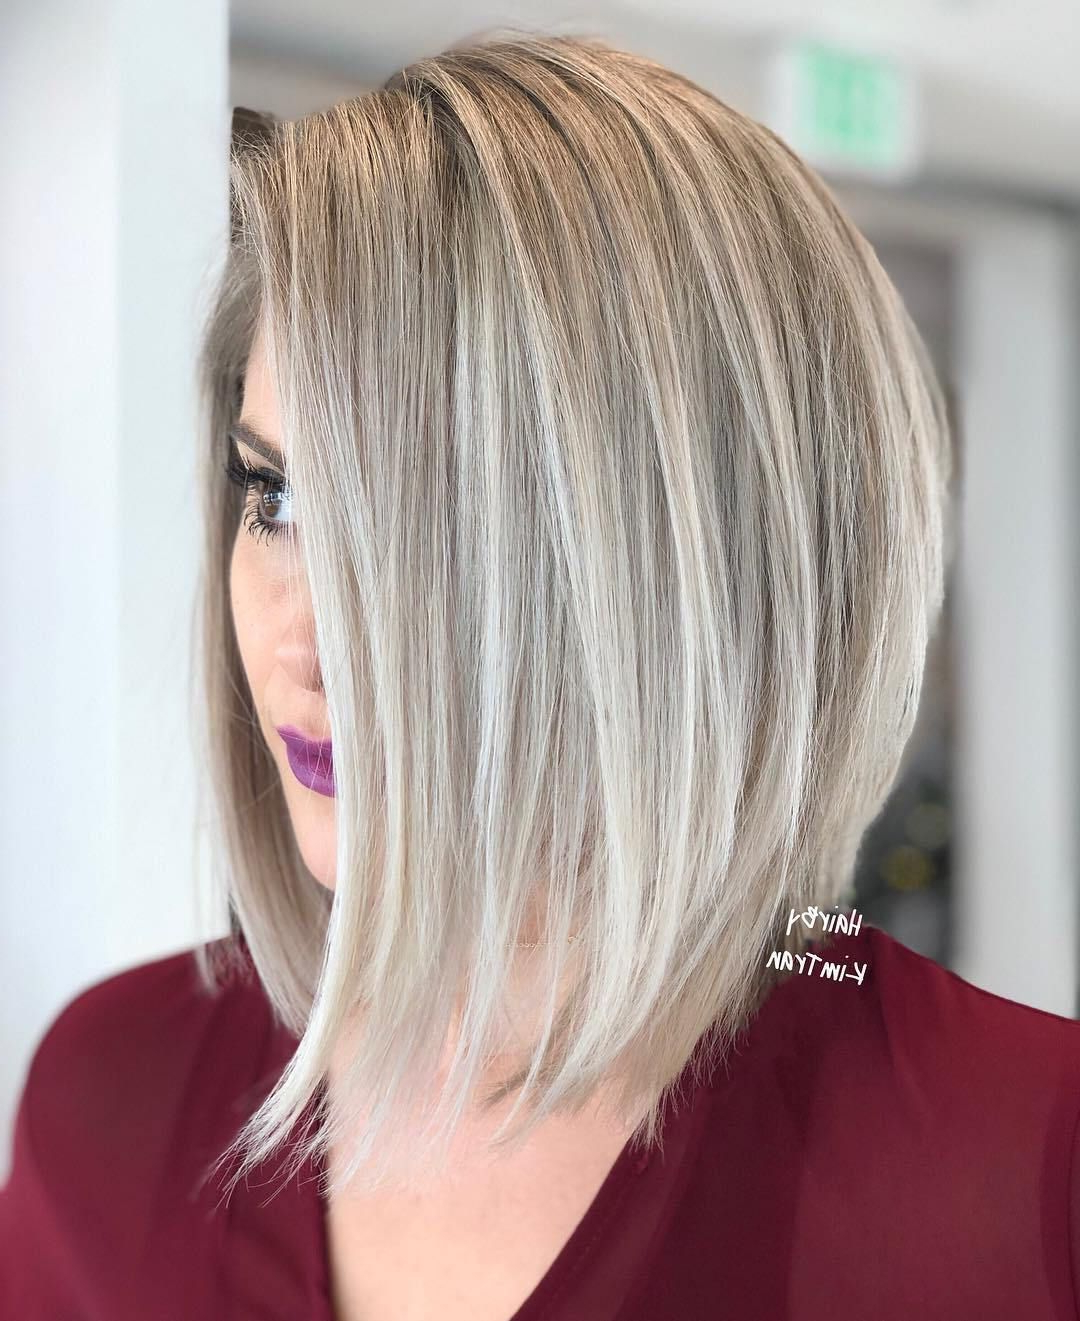 60 Layered Bob Styles: Modern Haircuts With Layers For Any With Current Razored Blonde Bob Haircuts With Bangs (View 7 of 20)